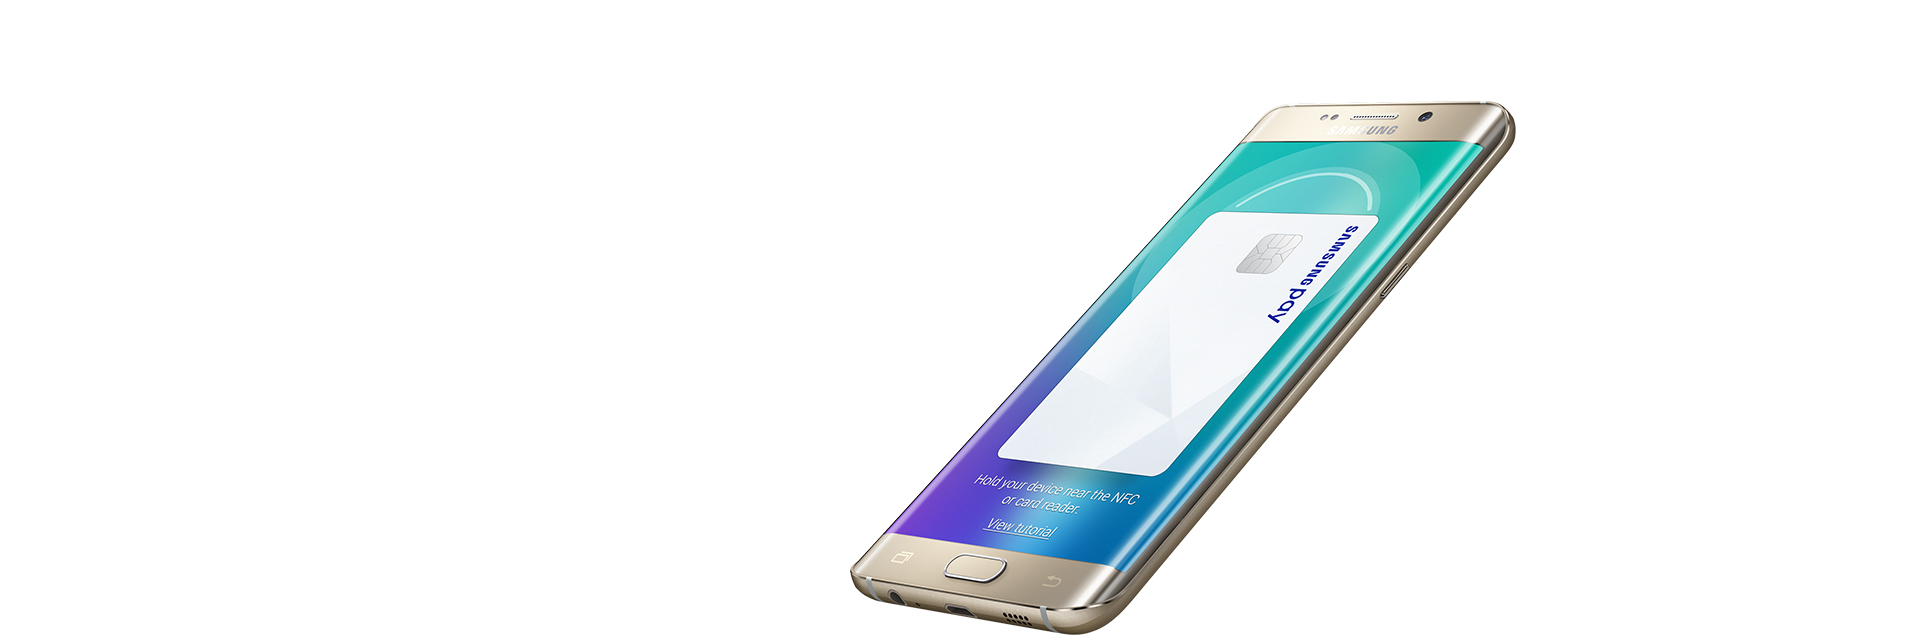 galaxy-s6-edge_overview_true-mobile-wallet